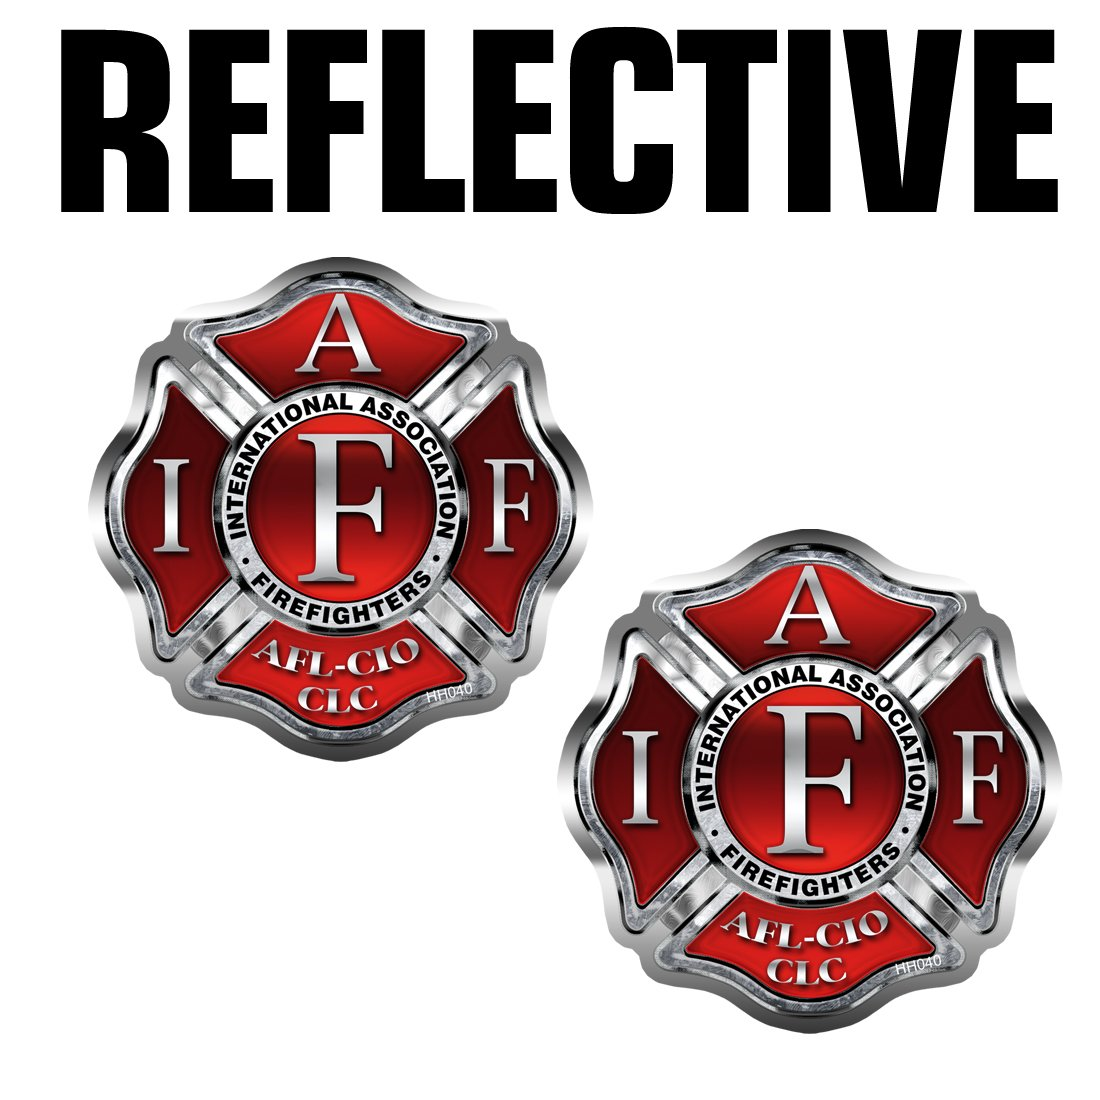 Cheap Iaff Stickers, find Iaff Stickers deals on line at Alibaba com